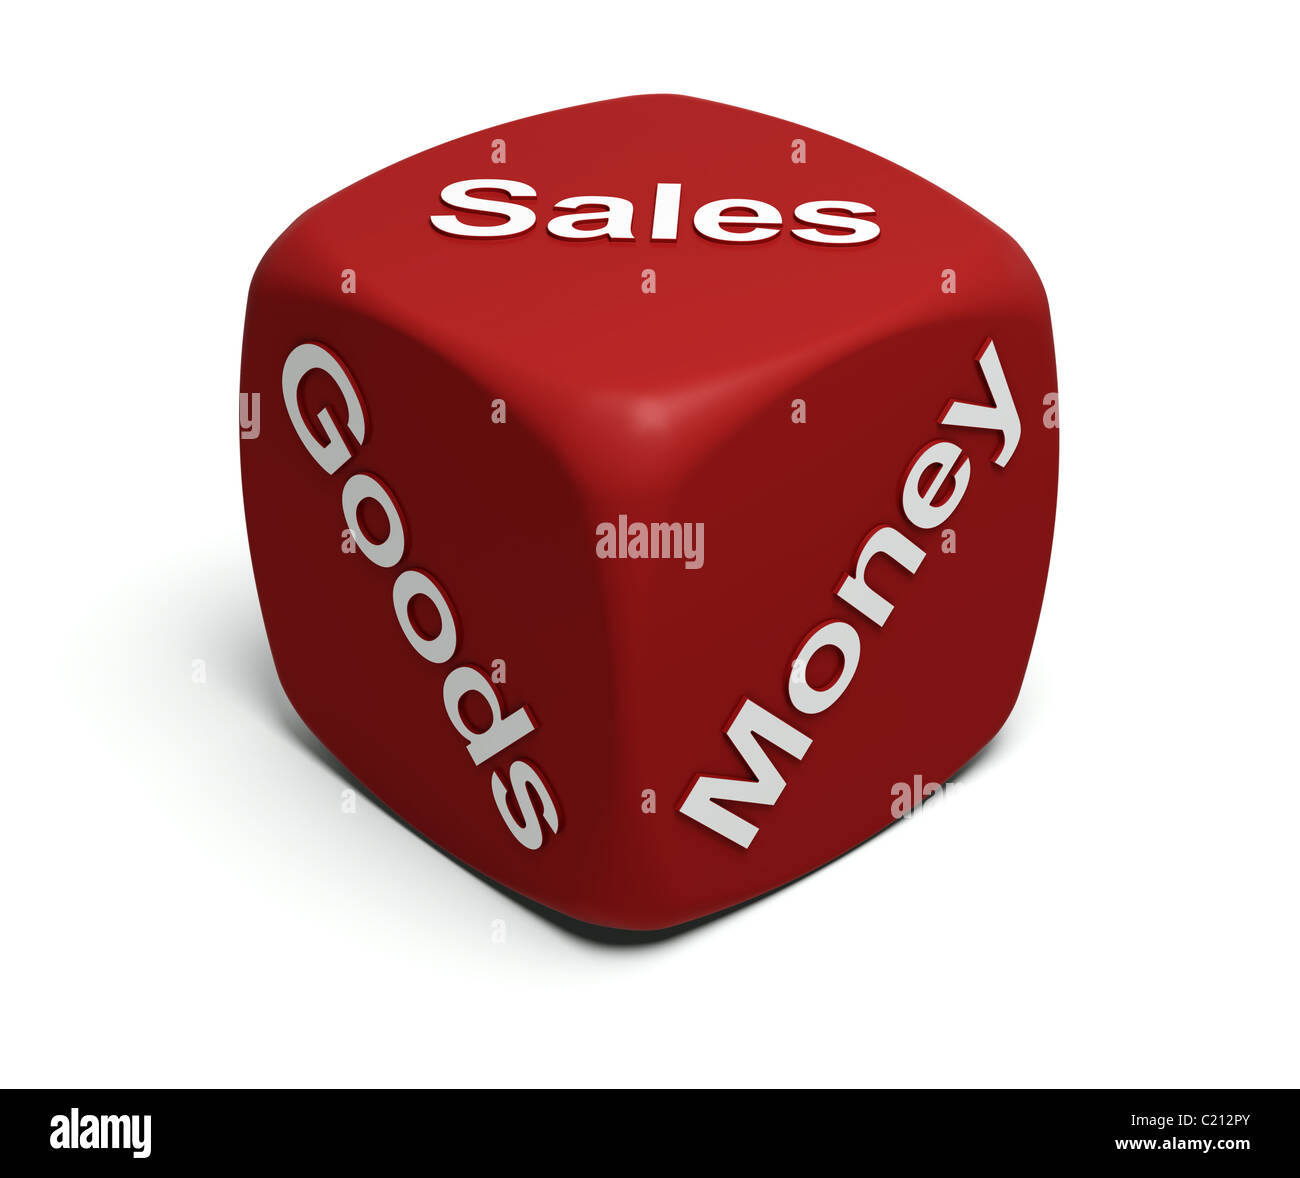 Red Dice with words Goods, Money, Sales on faces - Stock Image